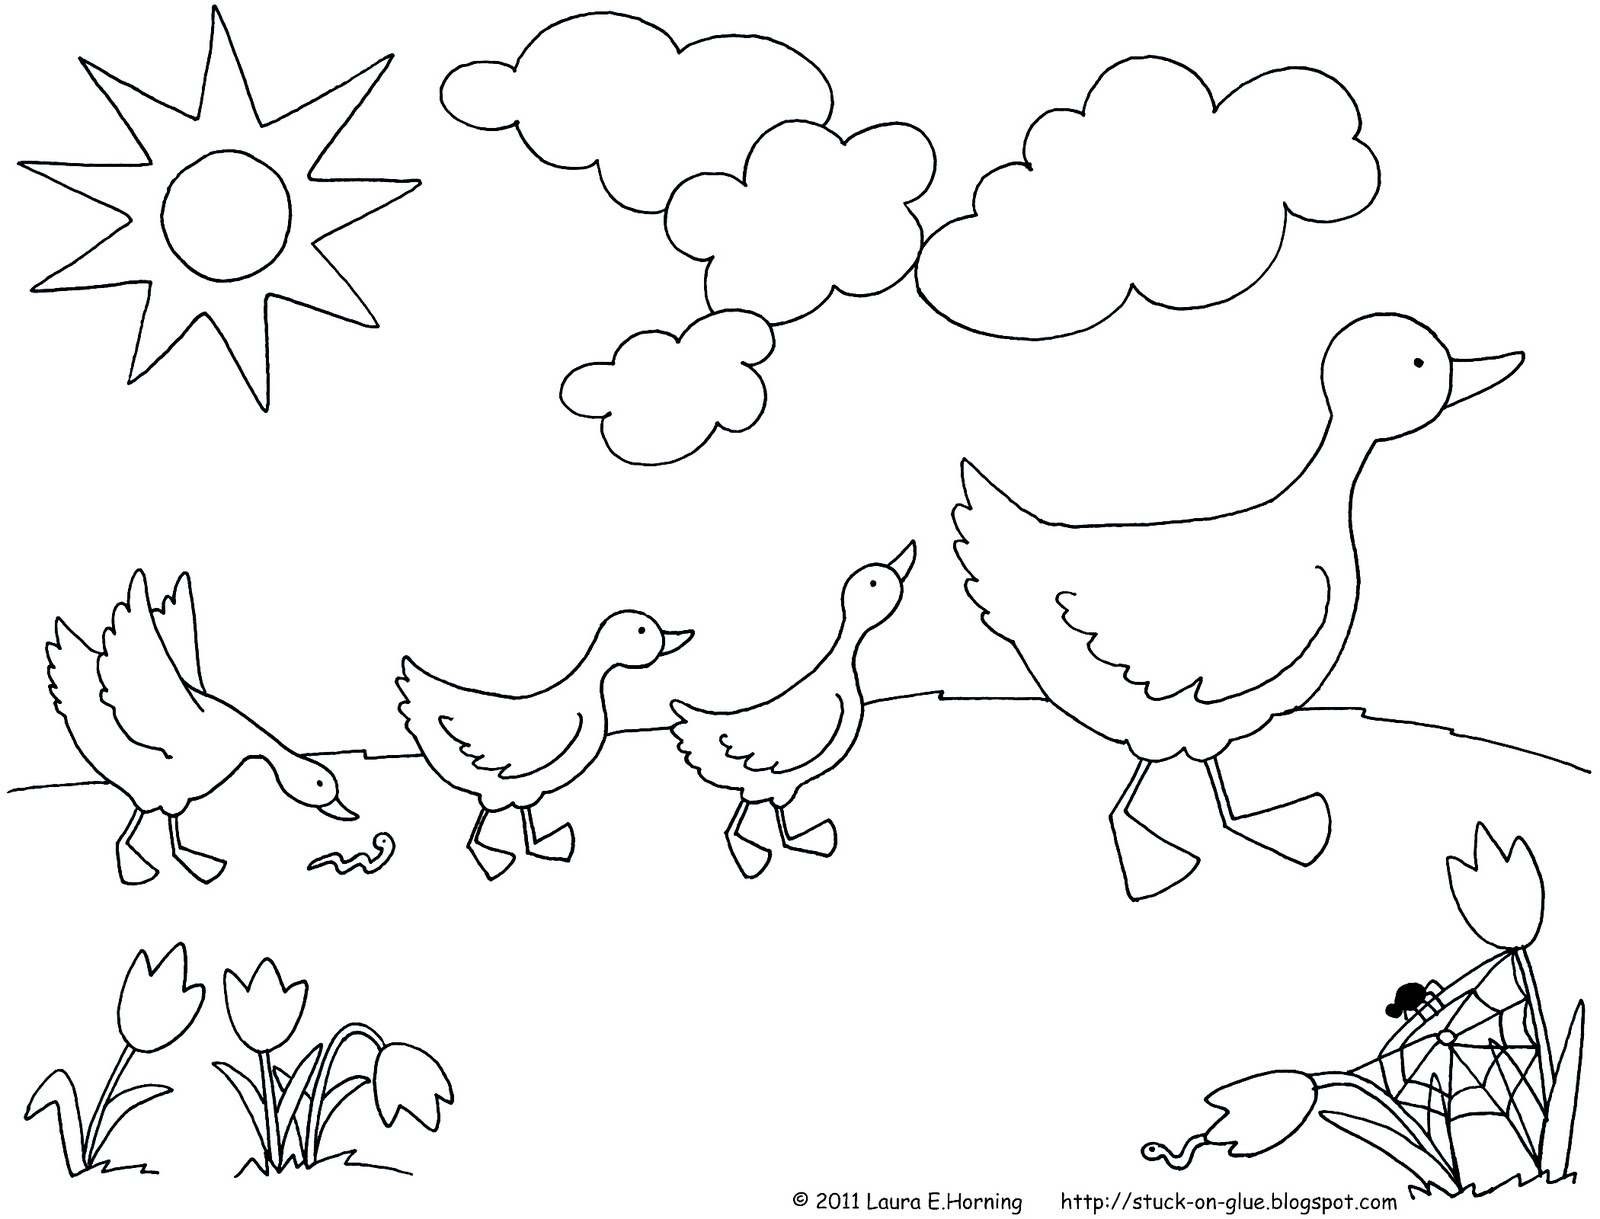 give your octopus a paintbrush or 8 printable ducks in a row